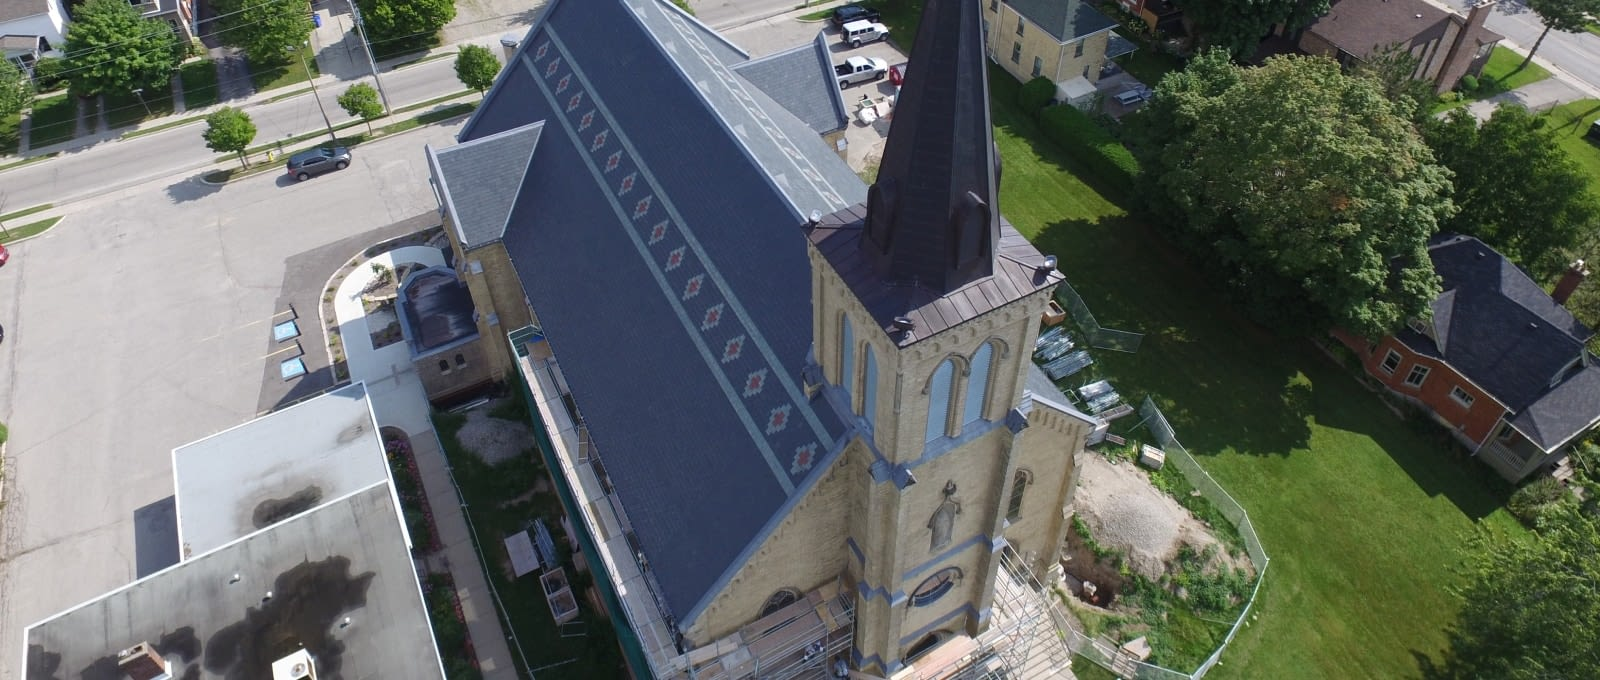 Specialty Commercial Roofing - Completed commercial roof restoration at St.Joseph's Roman Catholic Church in Stratford, Ontario